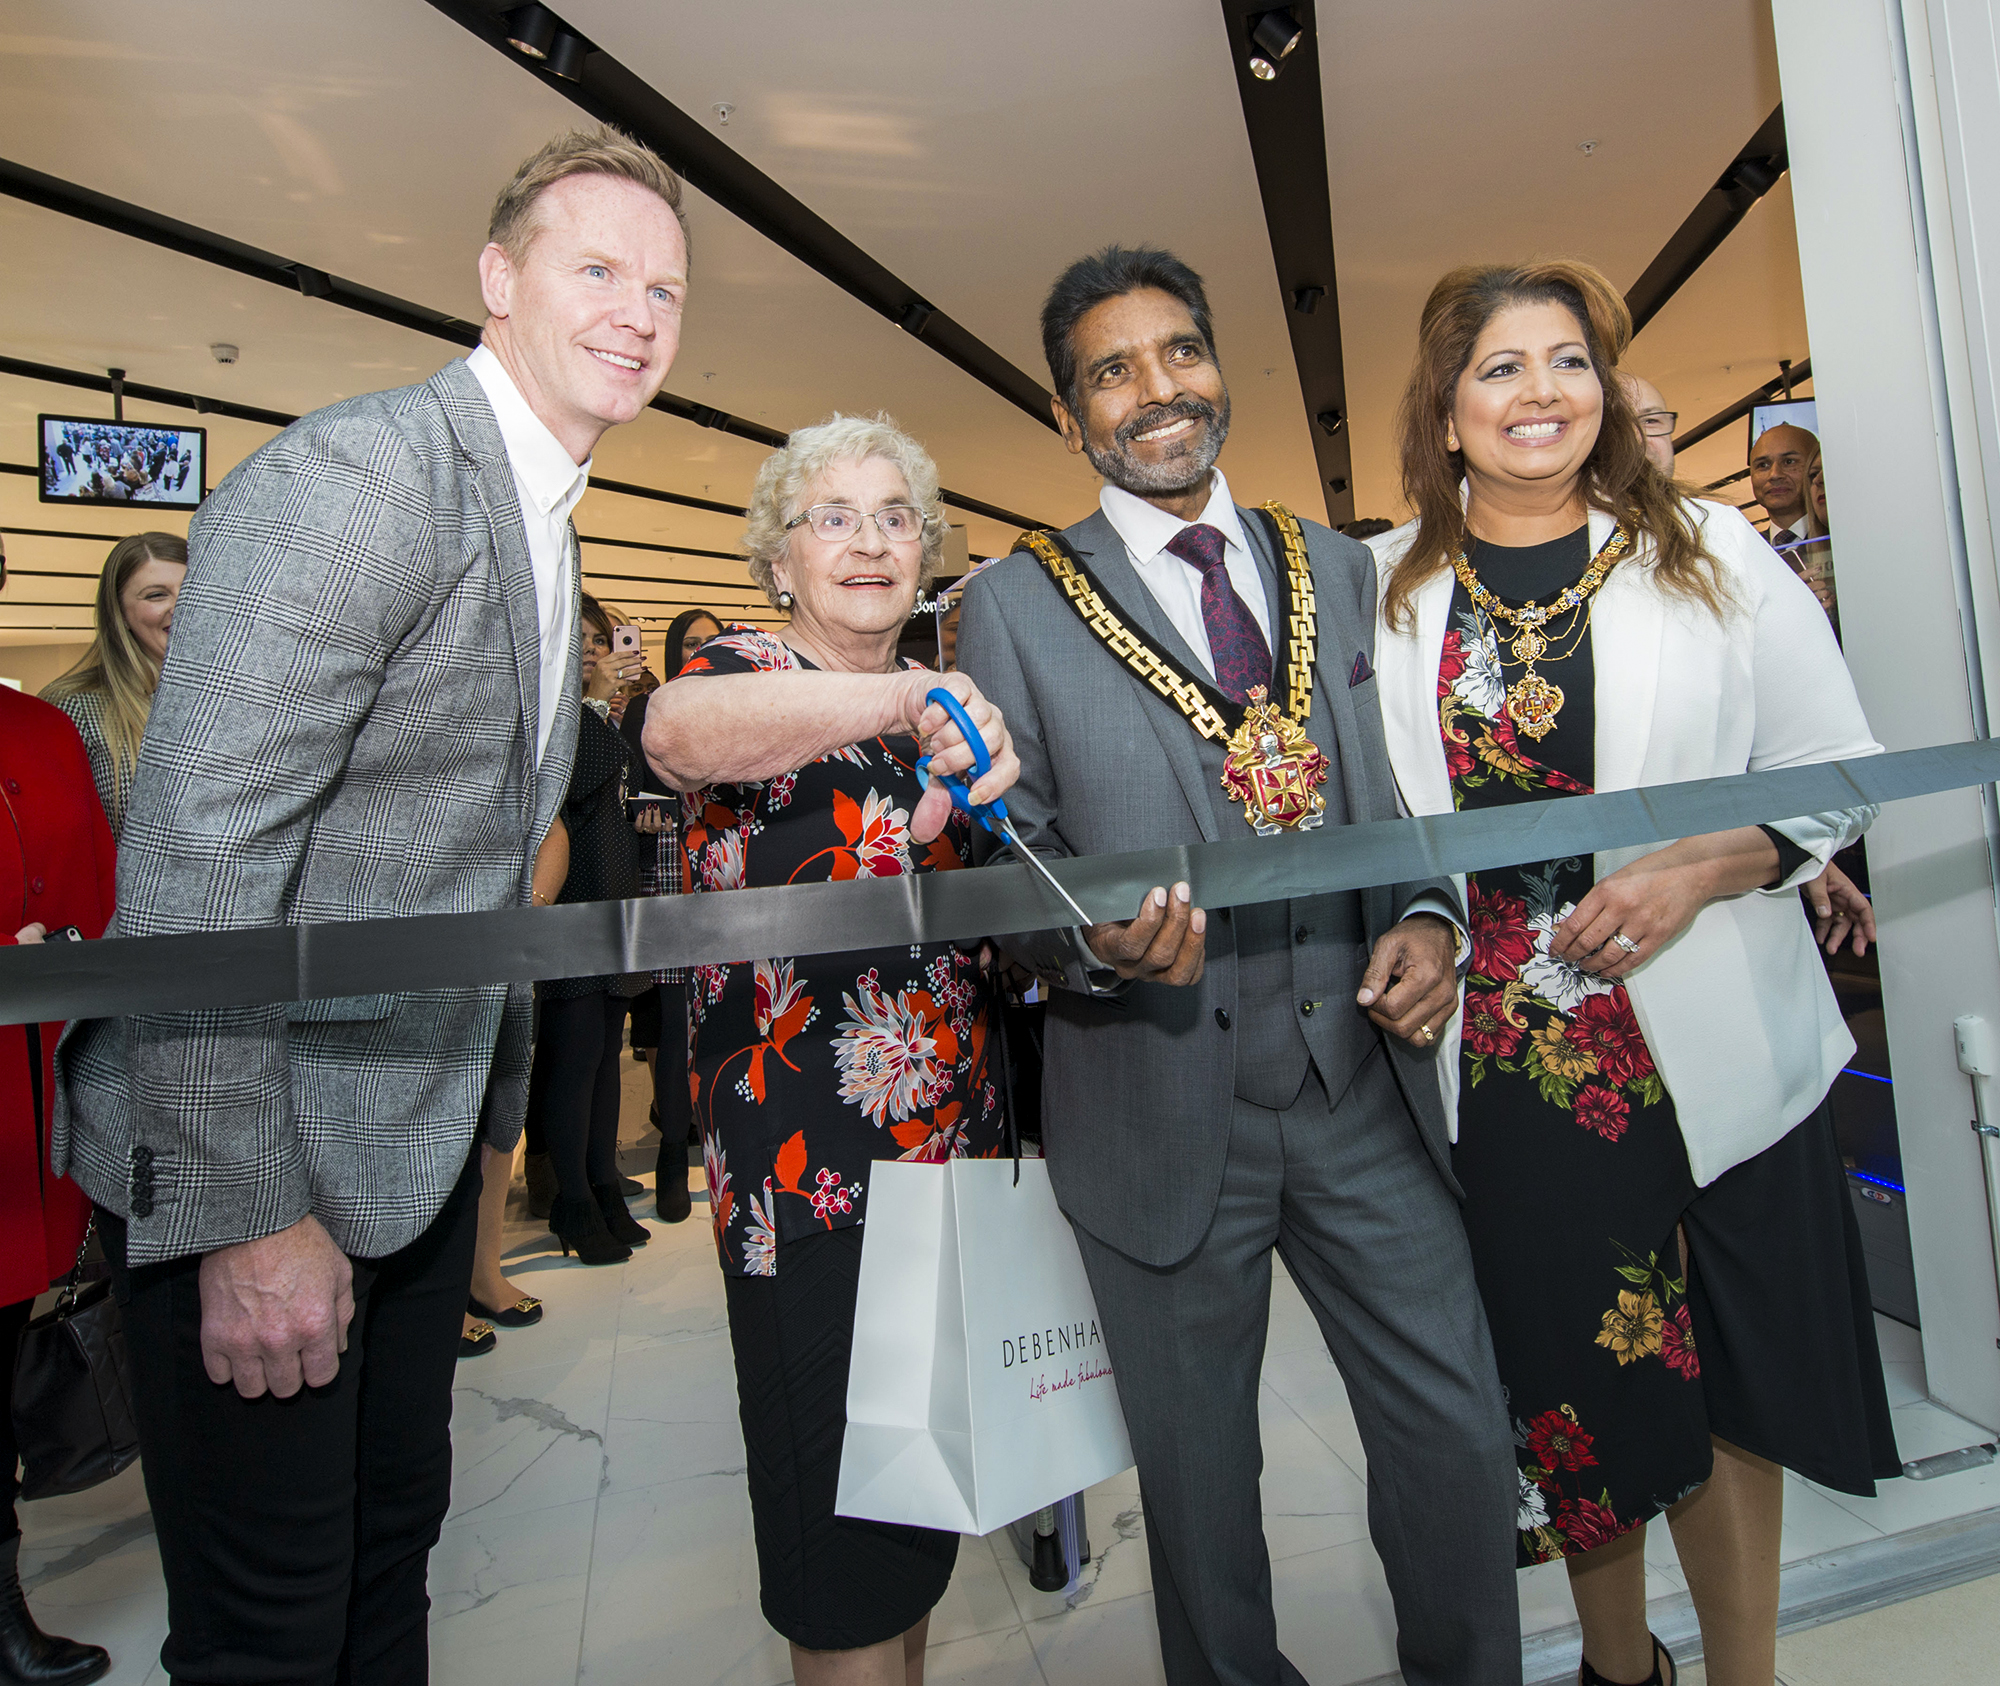 (From left) Jody Craddock, Ann Guest and Mayor and Mayoress of the City of Wolverhampton2.jpg